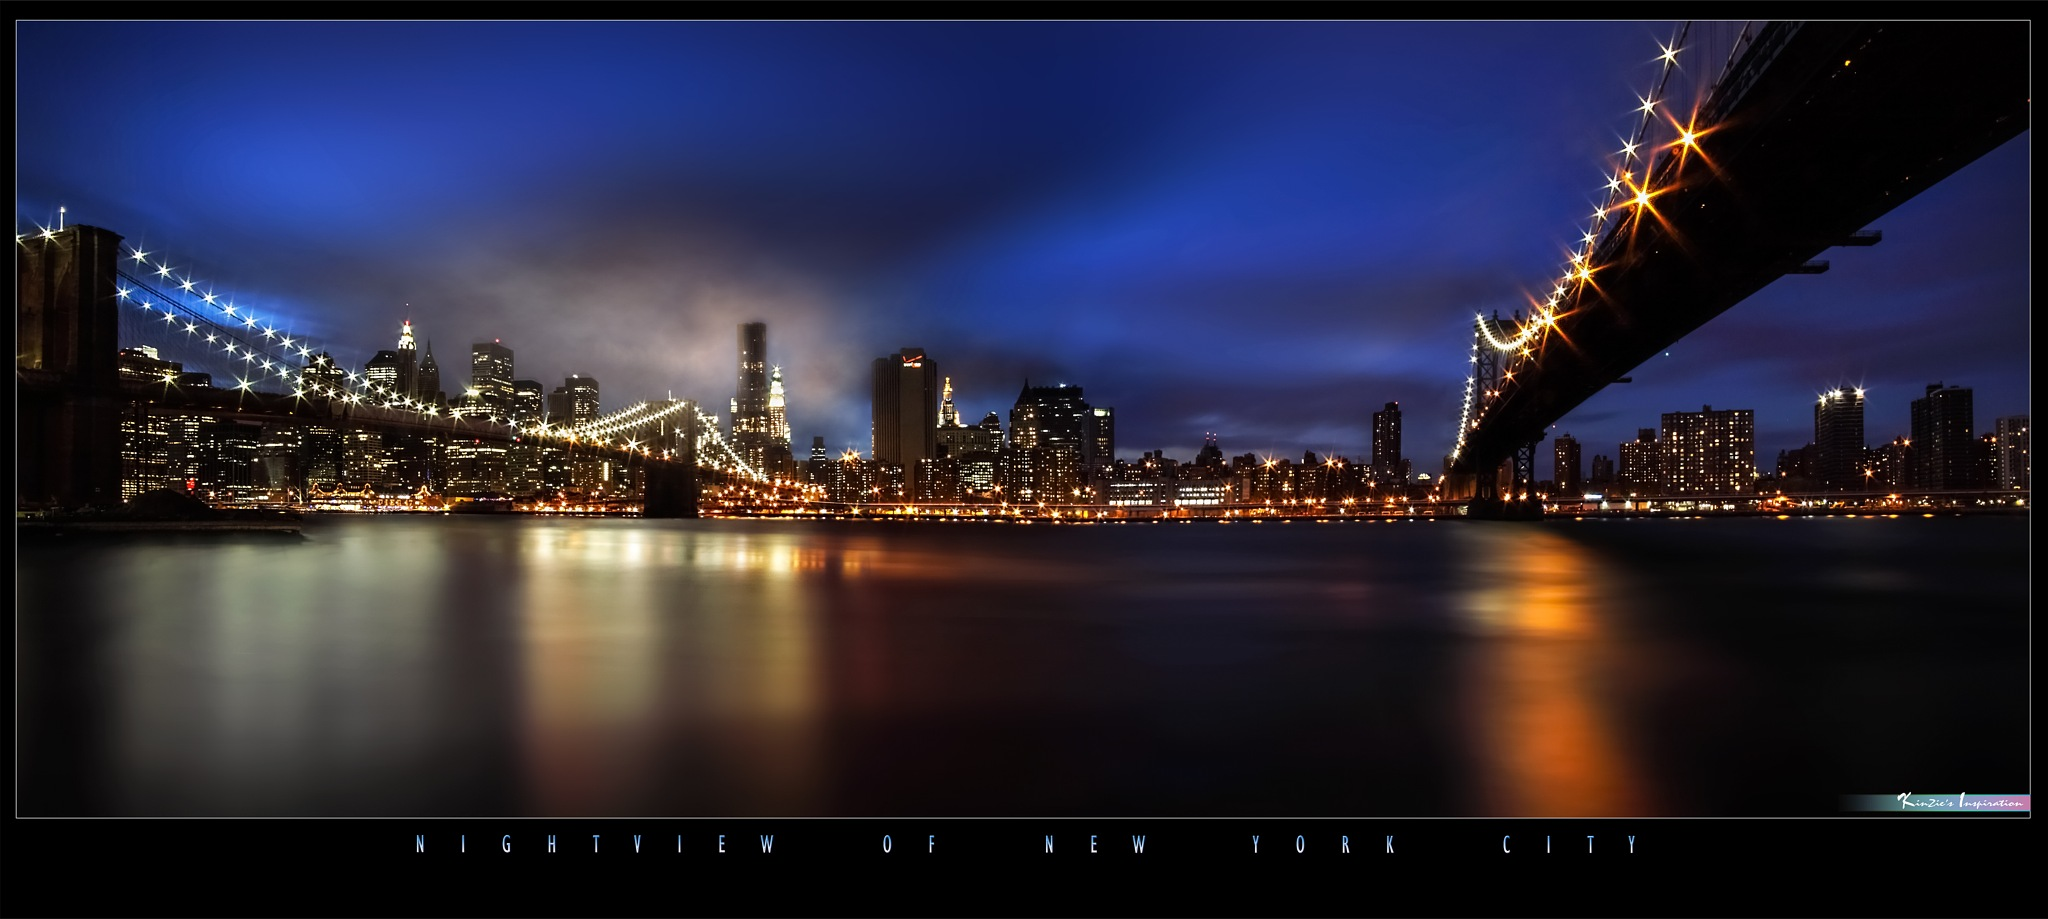 An Overview of The Brooklyn & Manhattan Bridge, NYC  *An Iconic & Popular Landmark* by iLOVEnature's Photography Inspiration